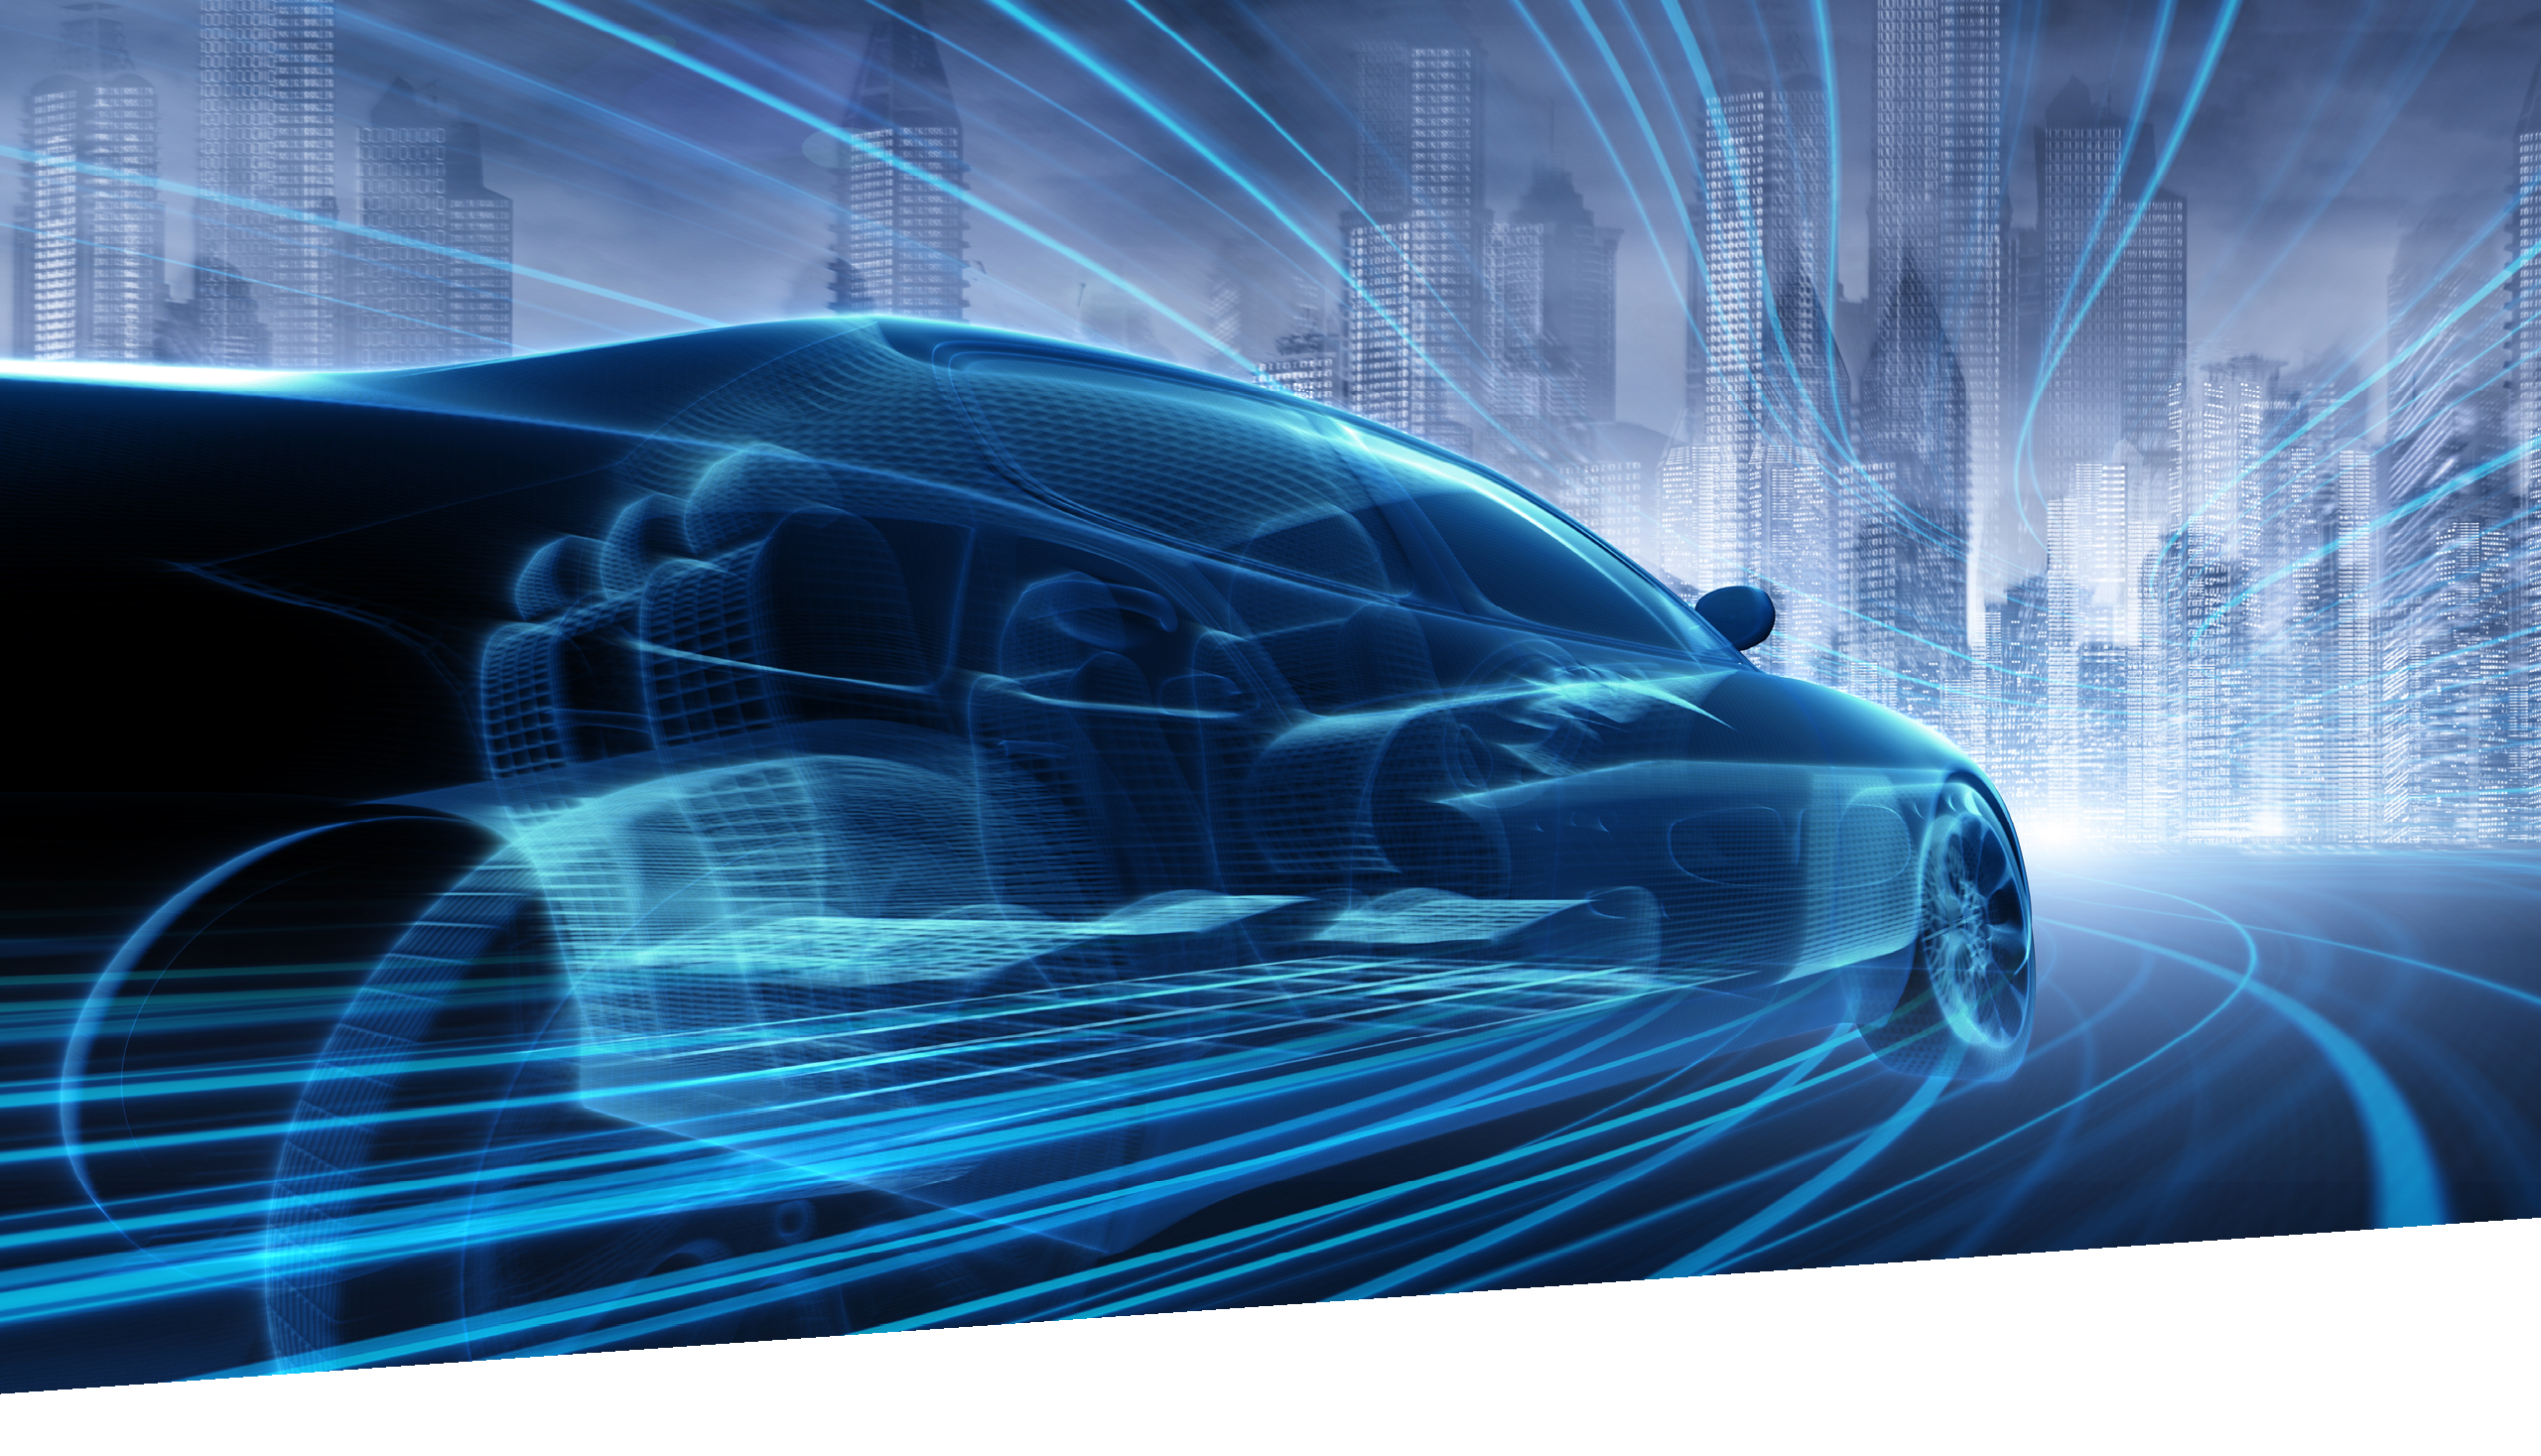 work with Inalfa, Clients, Suppliers & Start-ups, Mobility, Mobility experience, roof systems, roof solutions, driving, in-vehicle experience, relax and ride, work and ride, play and ride, socialize and ride